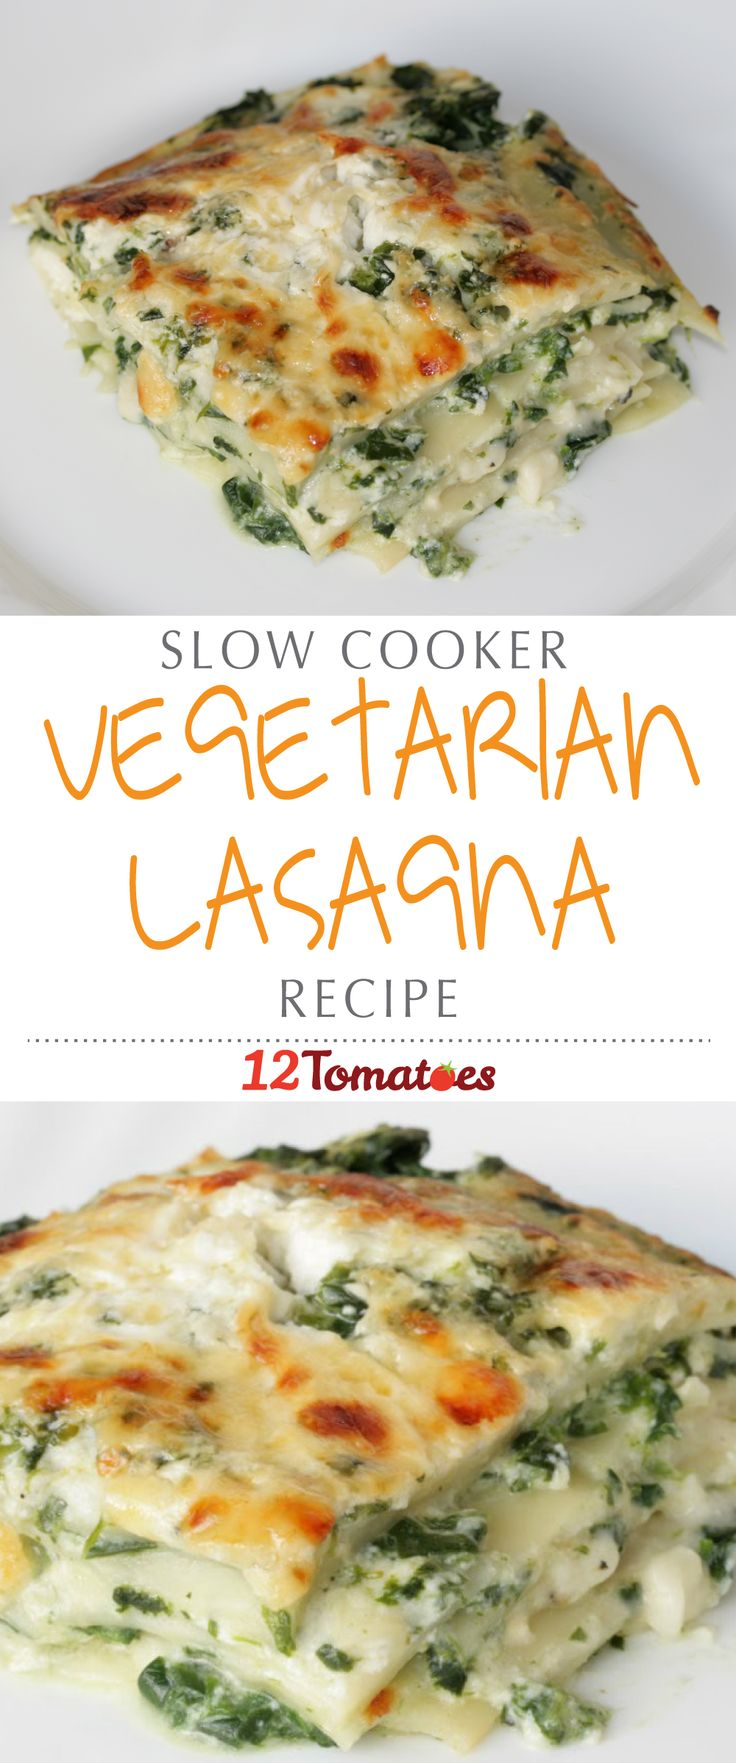 Slow Cooker Vegetarian Lasagna | The lasagna supplies plenty of nutrients from the spinach and only requires 30 minutes of prep time!